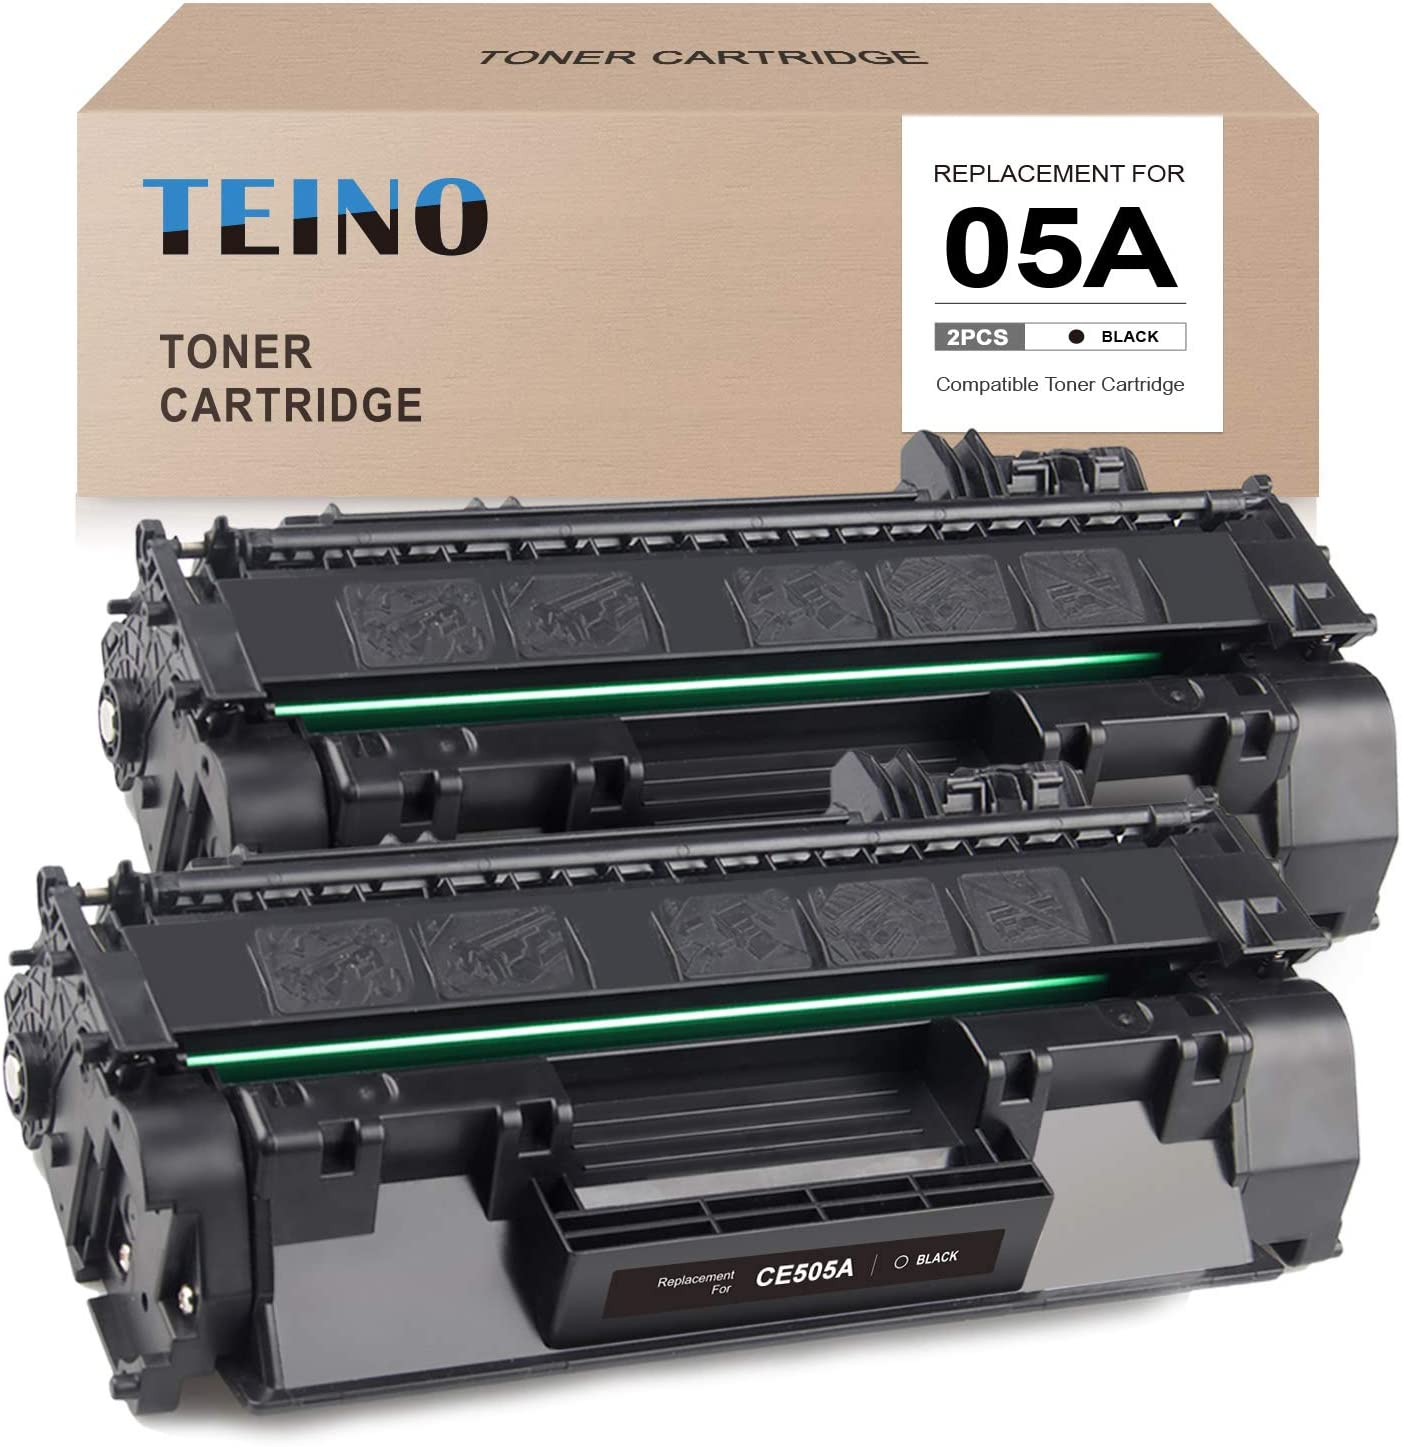 TEINO Compatible Toner Cartridge Replacement for HP 05A CE505A use with HP Laserjet P2055dn P2035 P2035n P2055d P2055x (Black, 2-Pack)